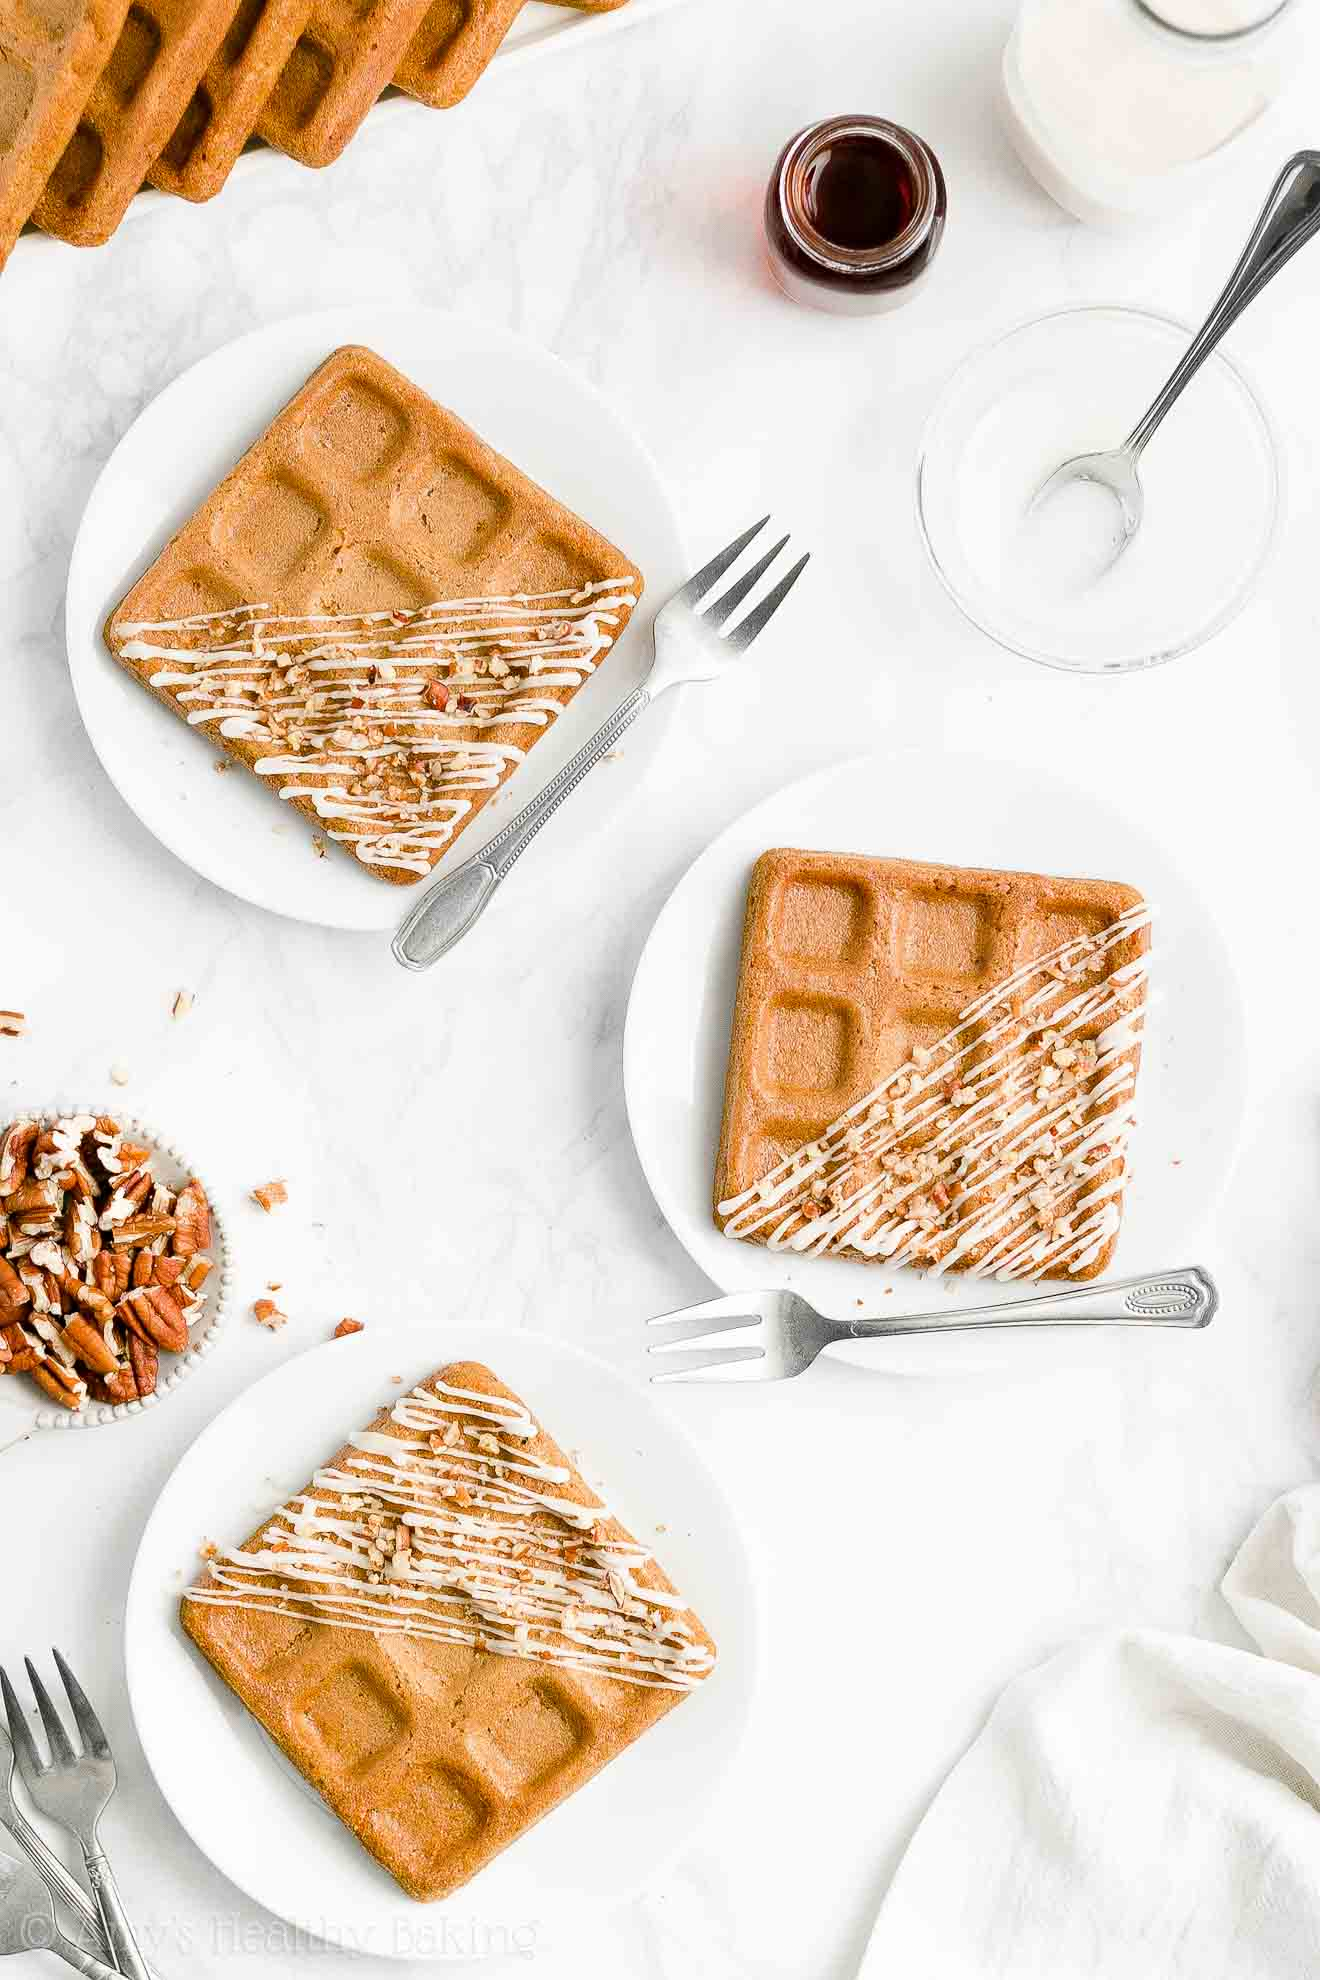 Best Easy Healthy Homemade Crispy Fluffy Whole Wheat Carrot Cake Waffles